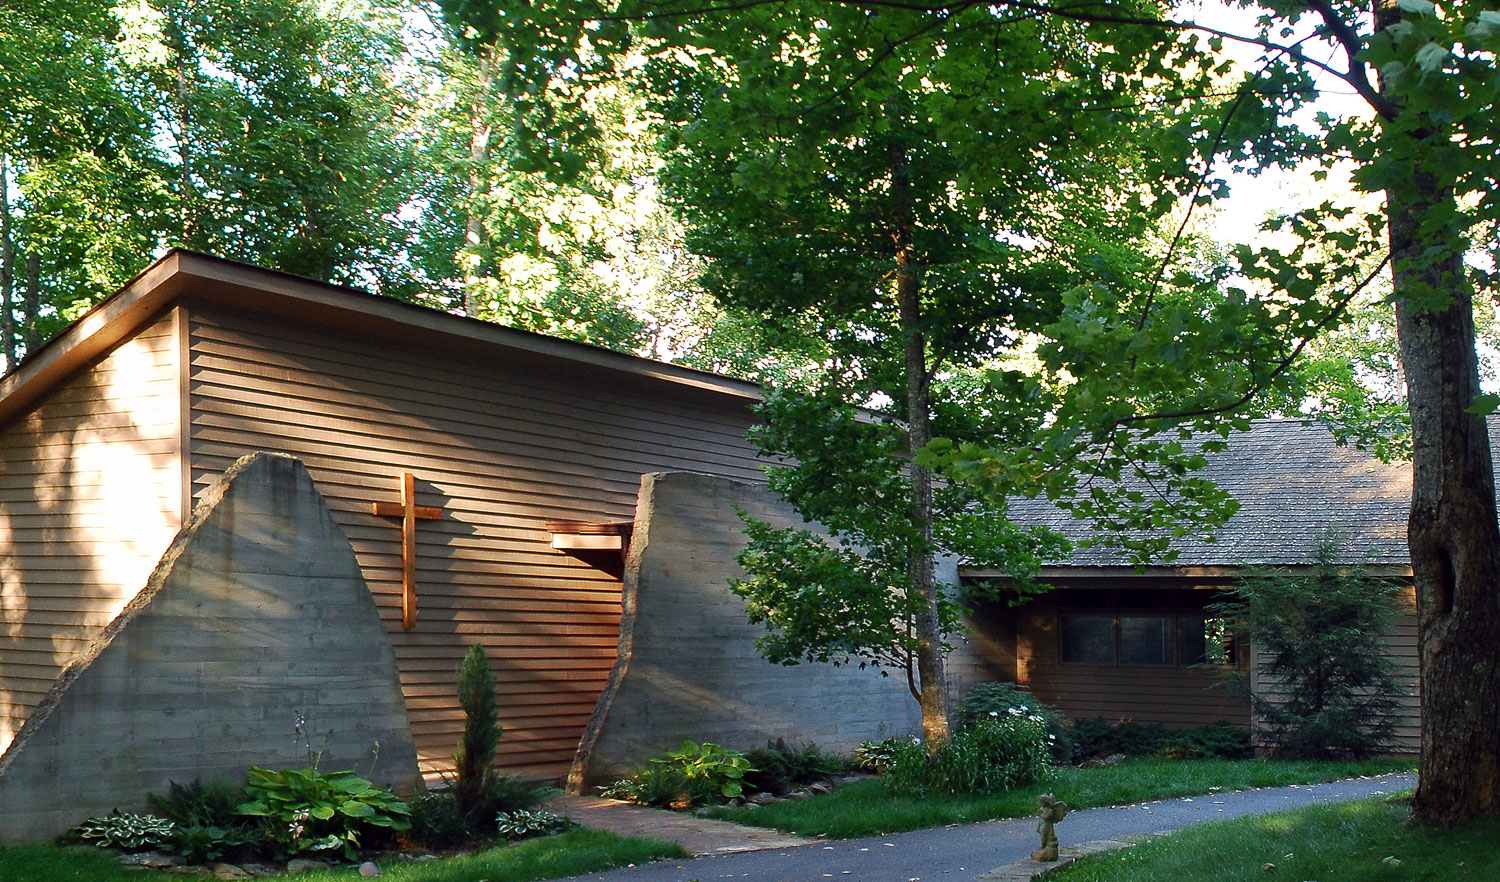 Exterior of custom designed home by Pavelchak Architecture in Valle Crucis, North Carolina, near Boone that showcases exposed cast in place concrete.